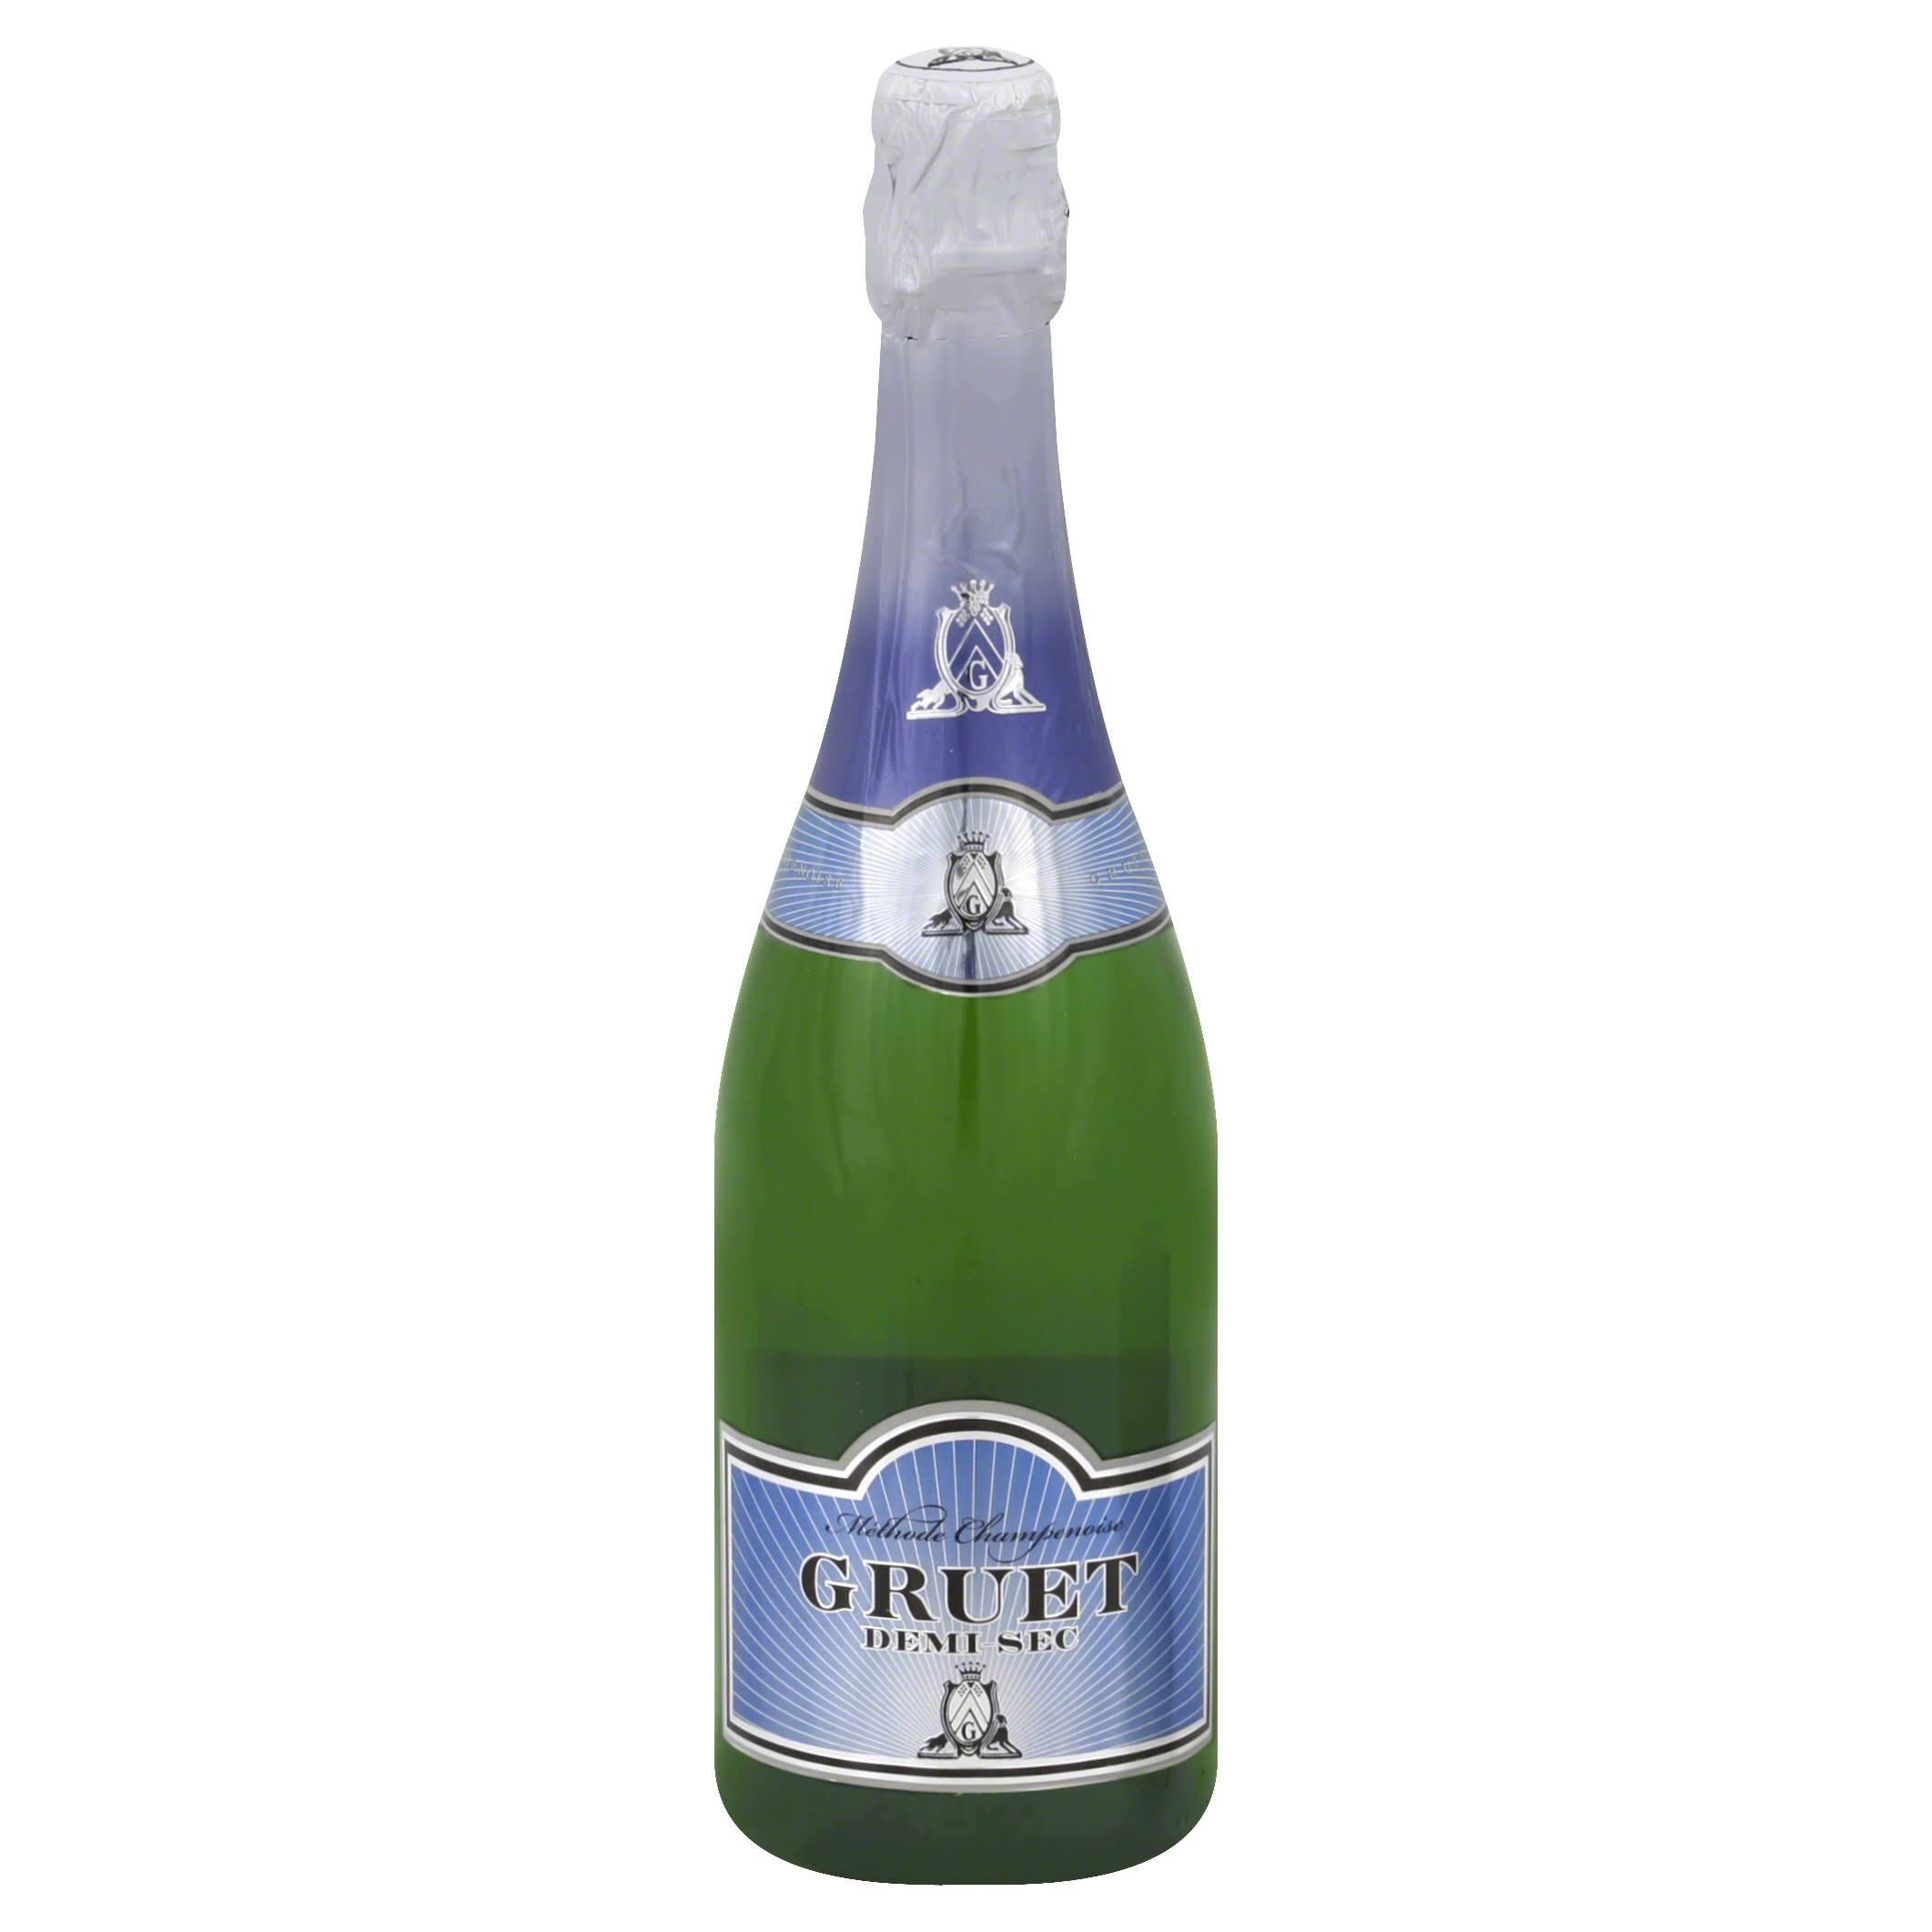 Gruet Sparkling Wine, Demi-Sec - 750 ml